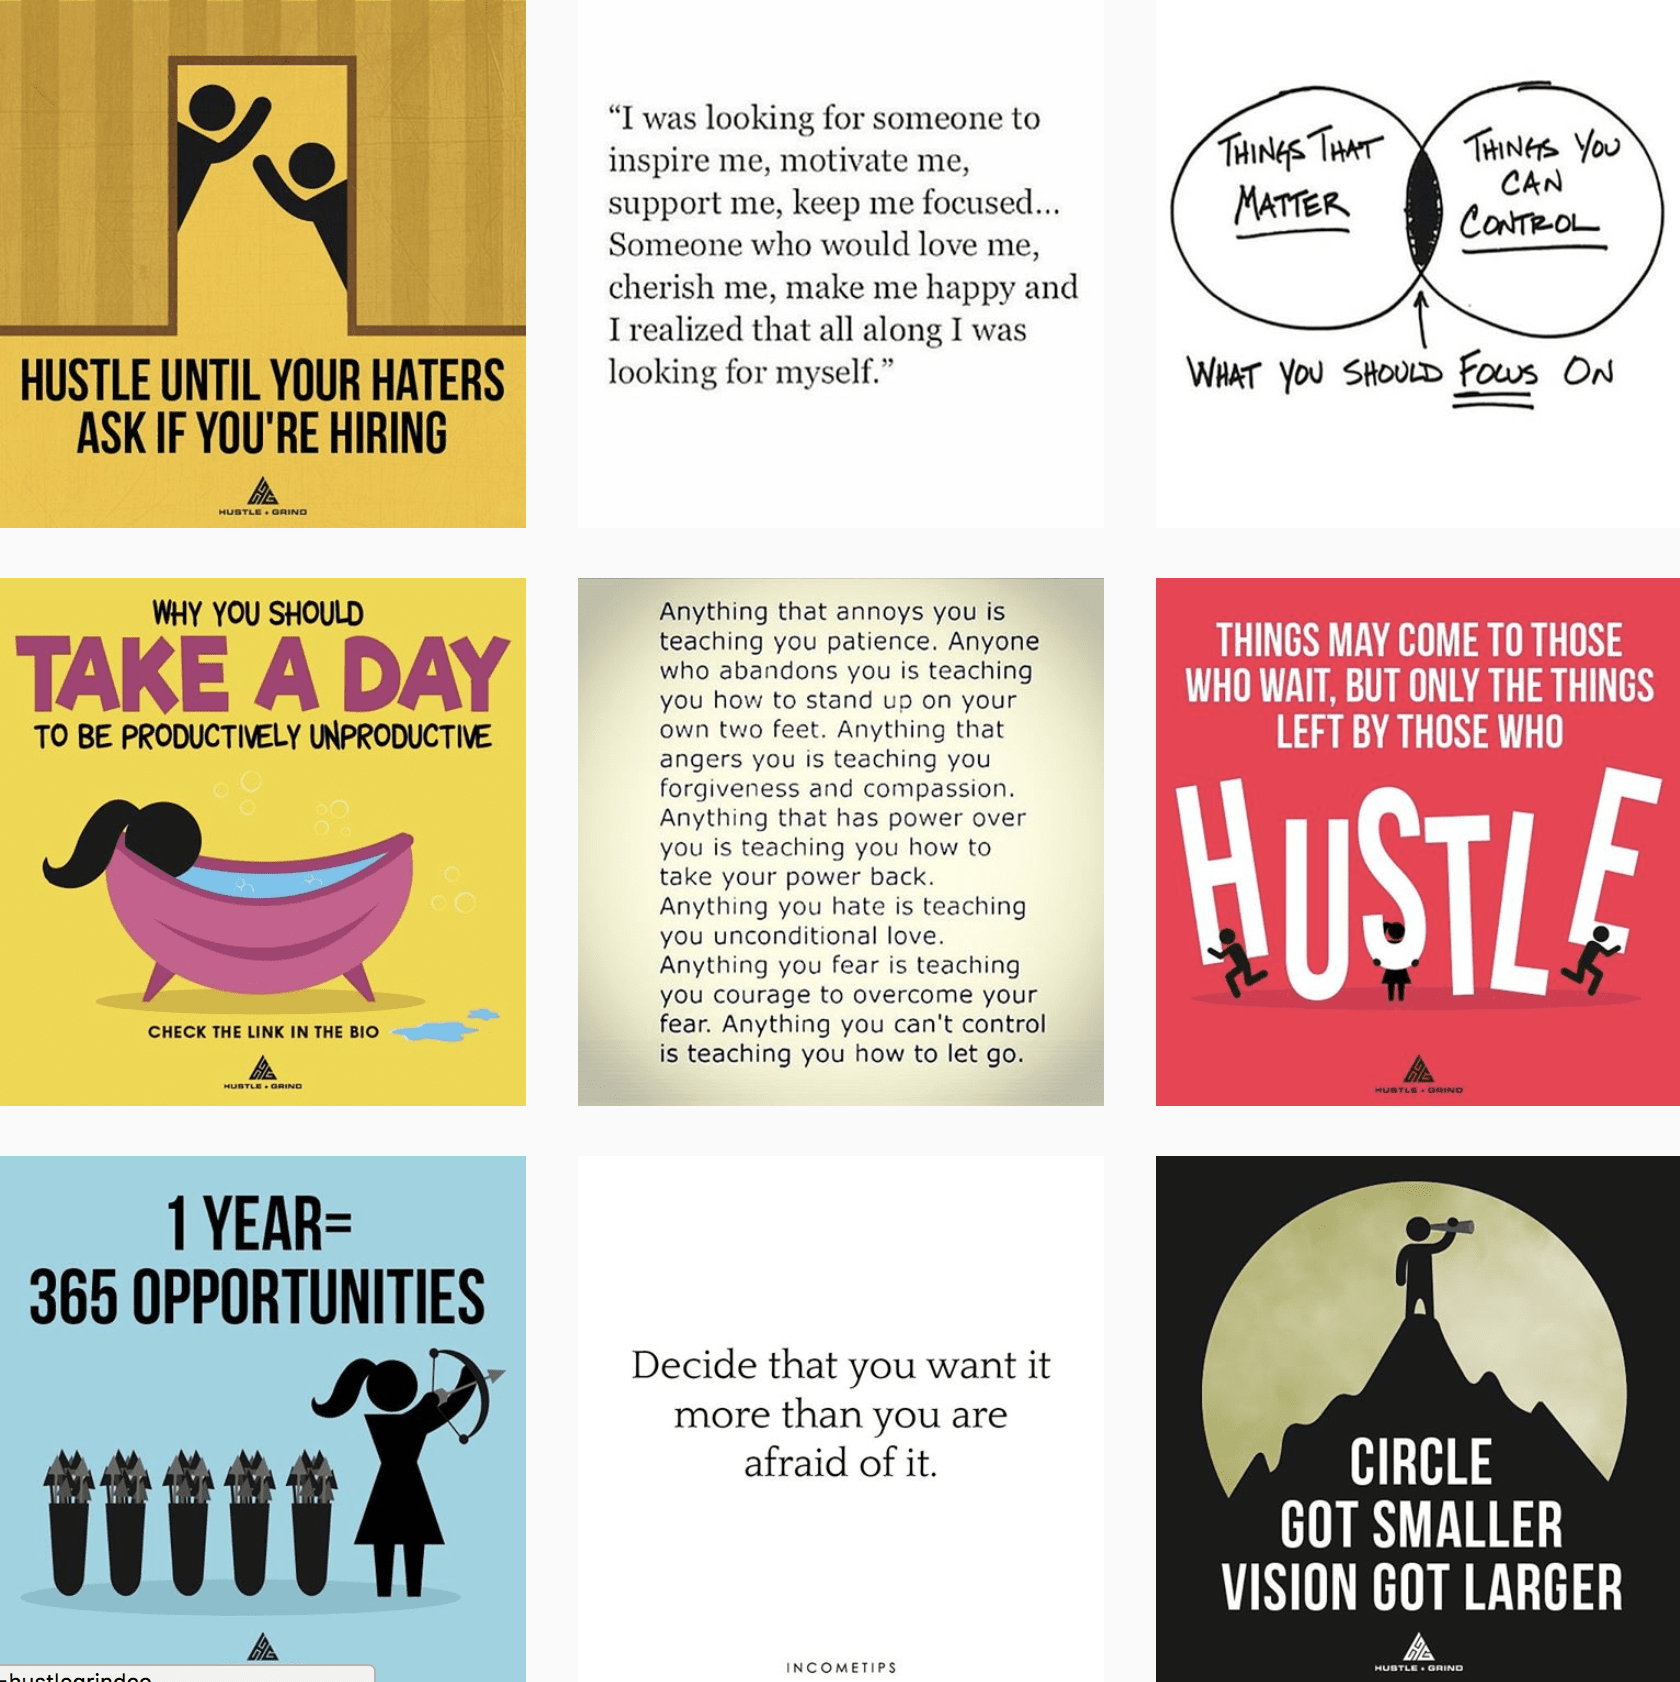 Hustle and Grind Instagram feed